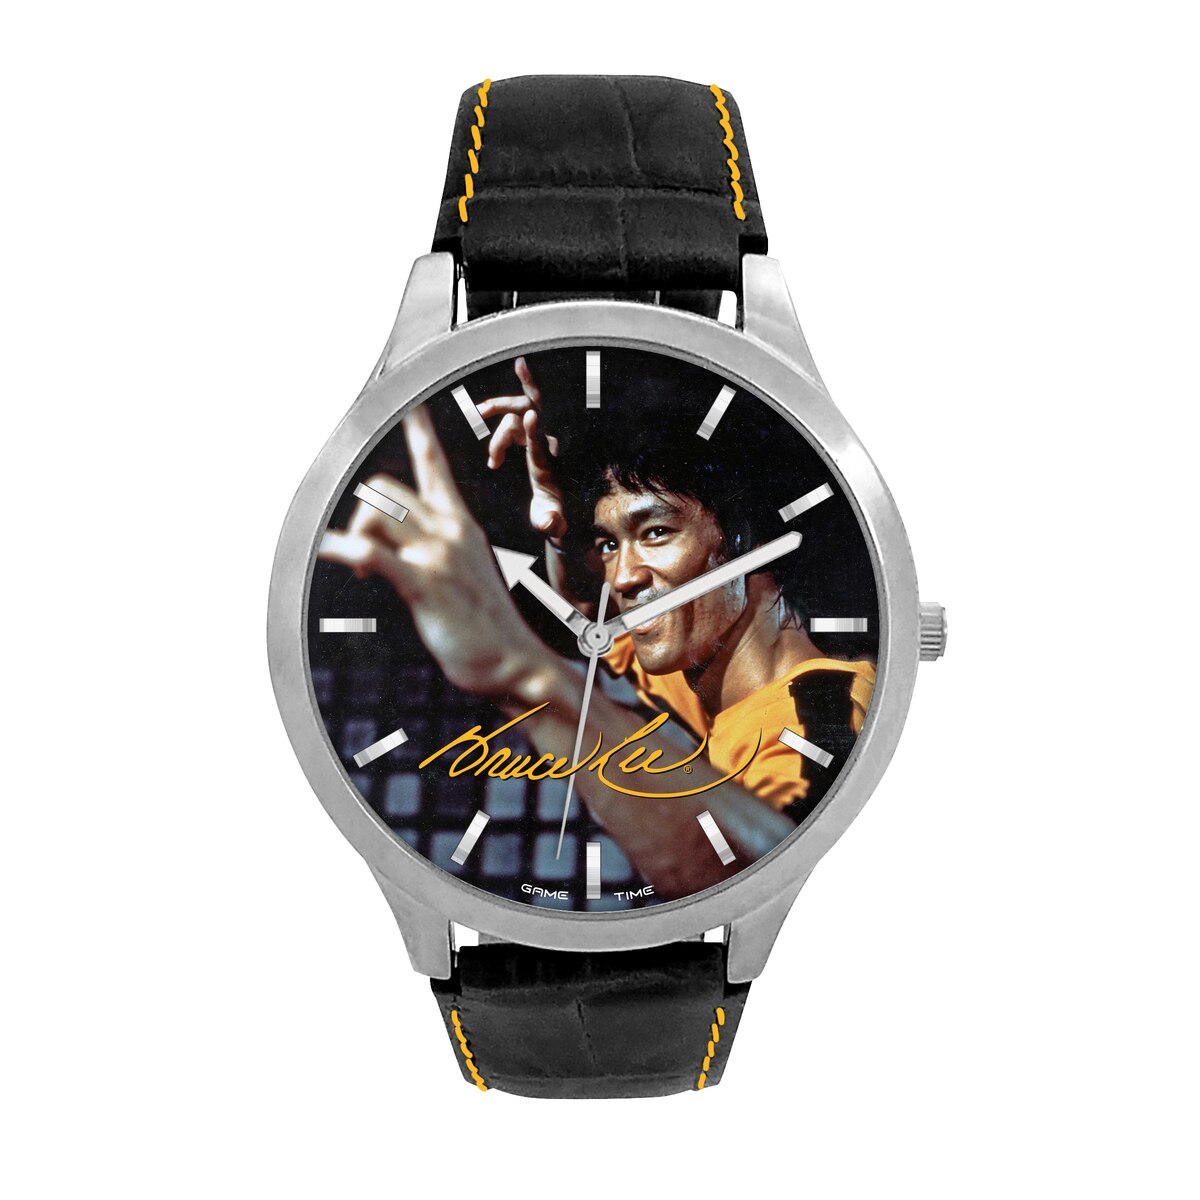 Bruce Fight Stance Pioneer Watch